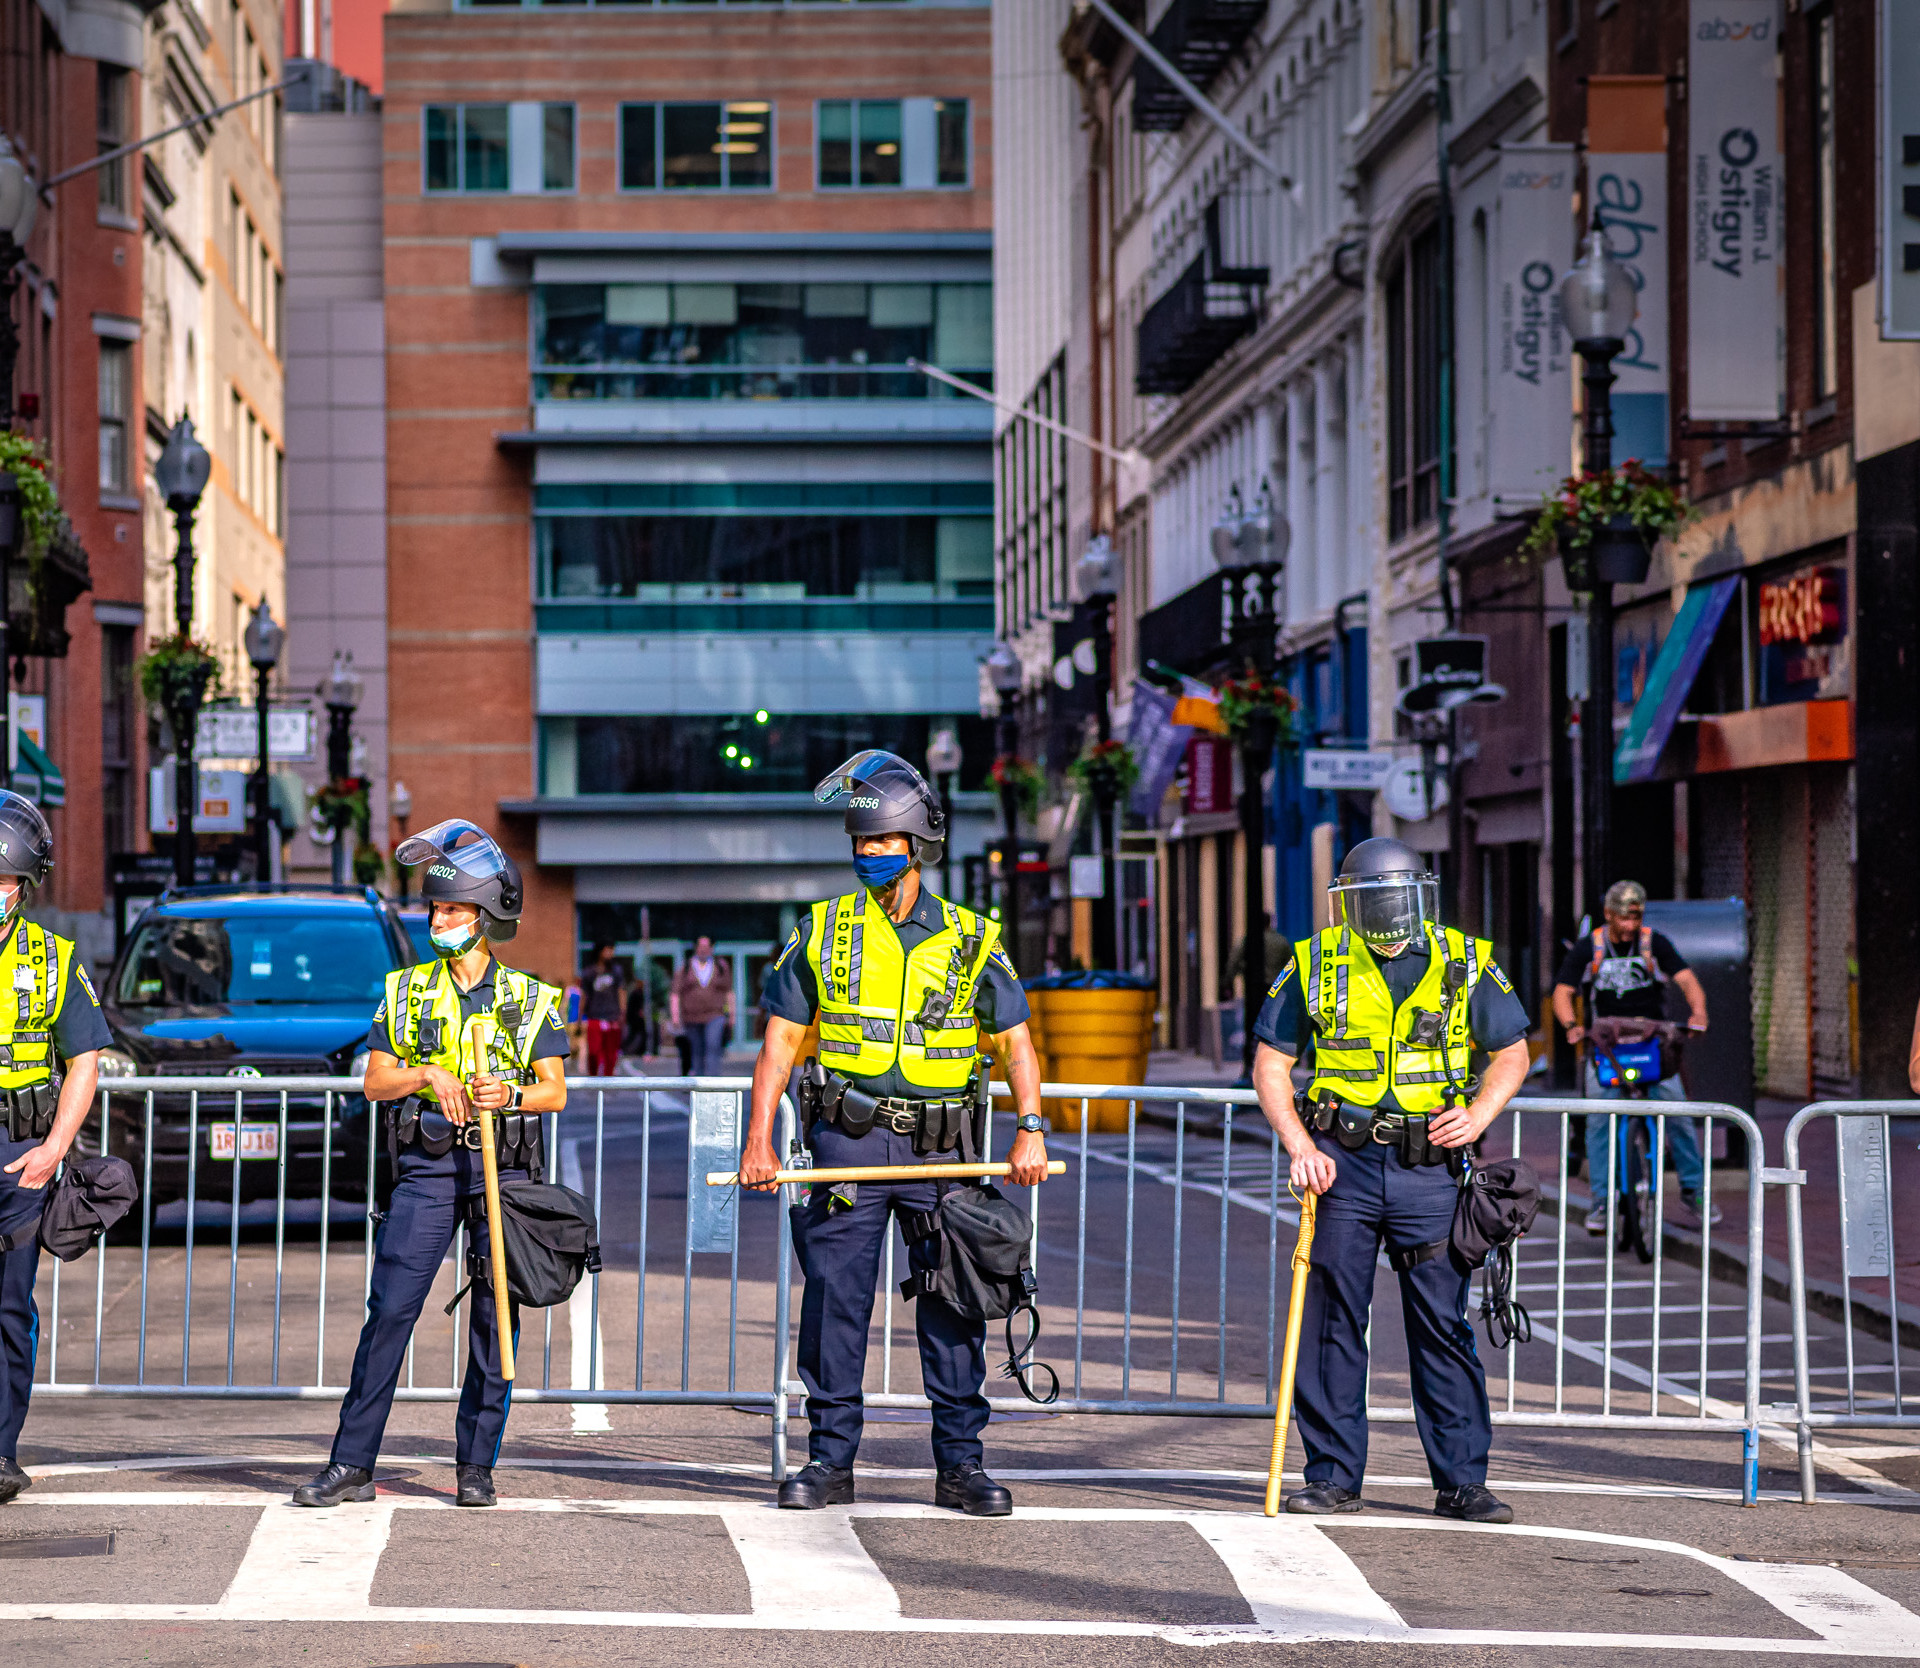 Boston Police started barricading the side streets almost immediately, after an early protest turned to looting. Subsequent marchers were prevented from getting any where that wasn't a main street. That the shutdown had ghosted the streets already made it easier to cut off flow to them; shops quickly boarded up, anywhere.